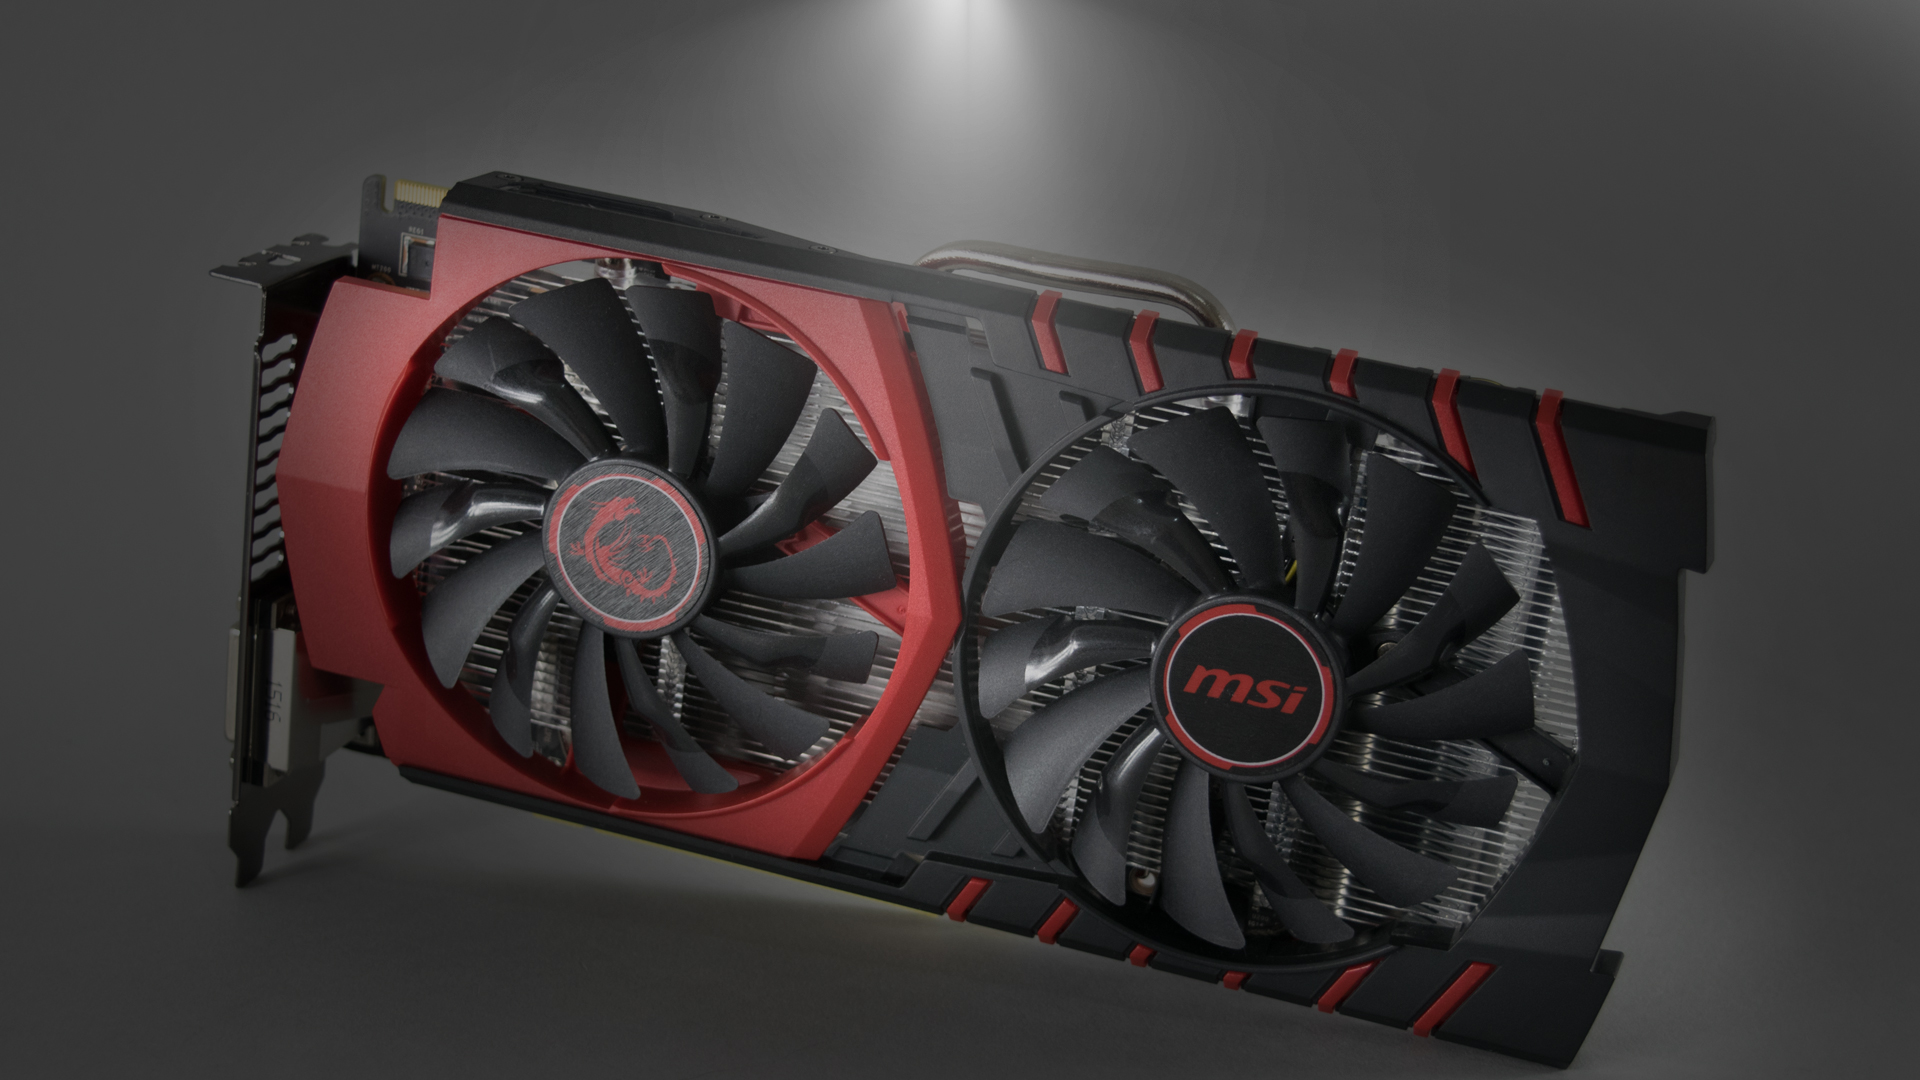 MSI R7 370 Gaming 2G Graphics Card Review  Play3r